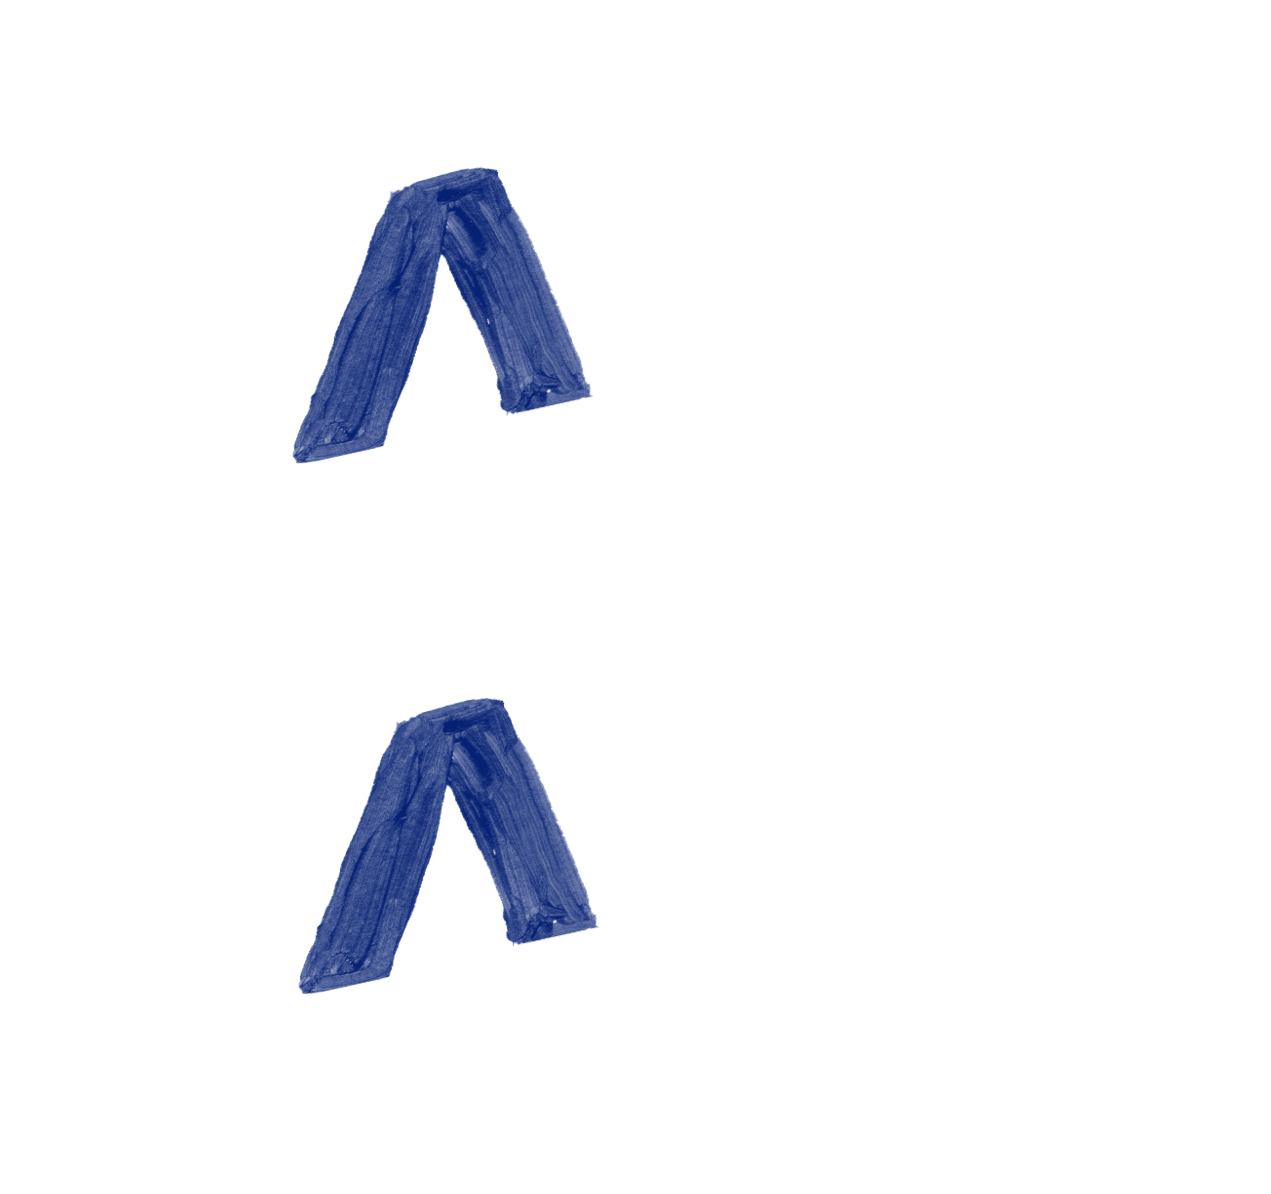 Raise your hand - Every change starts with a powerful act